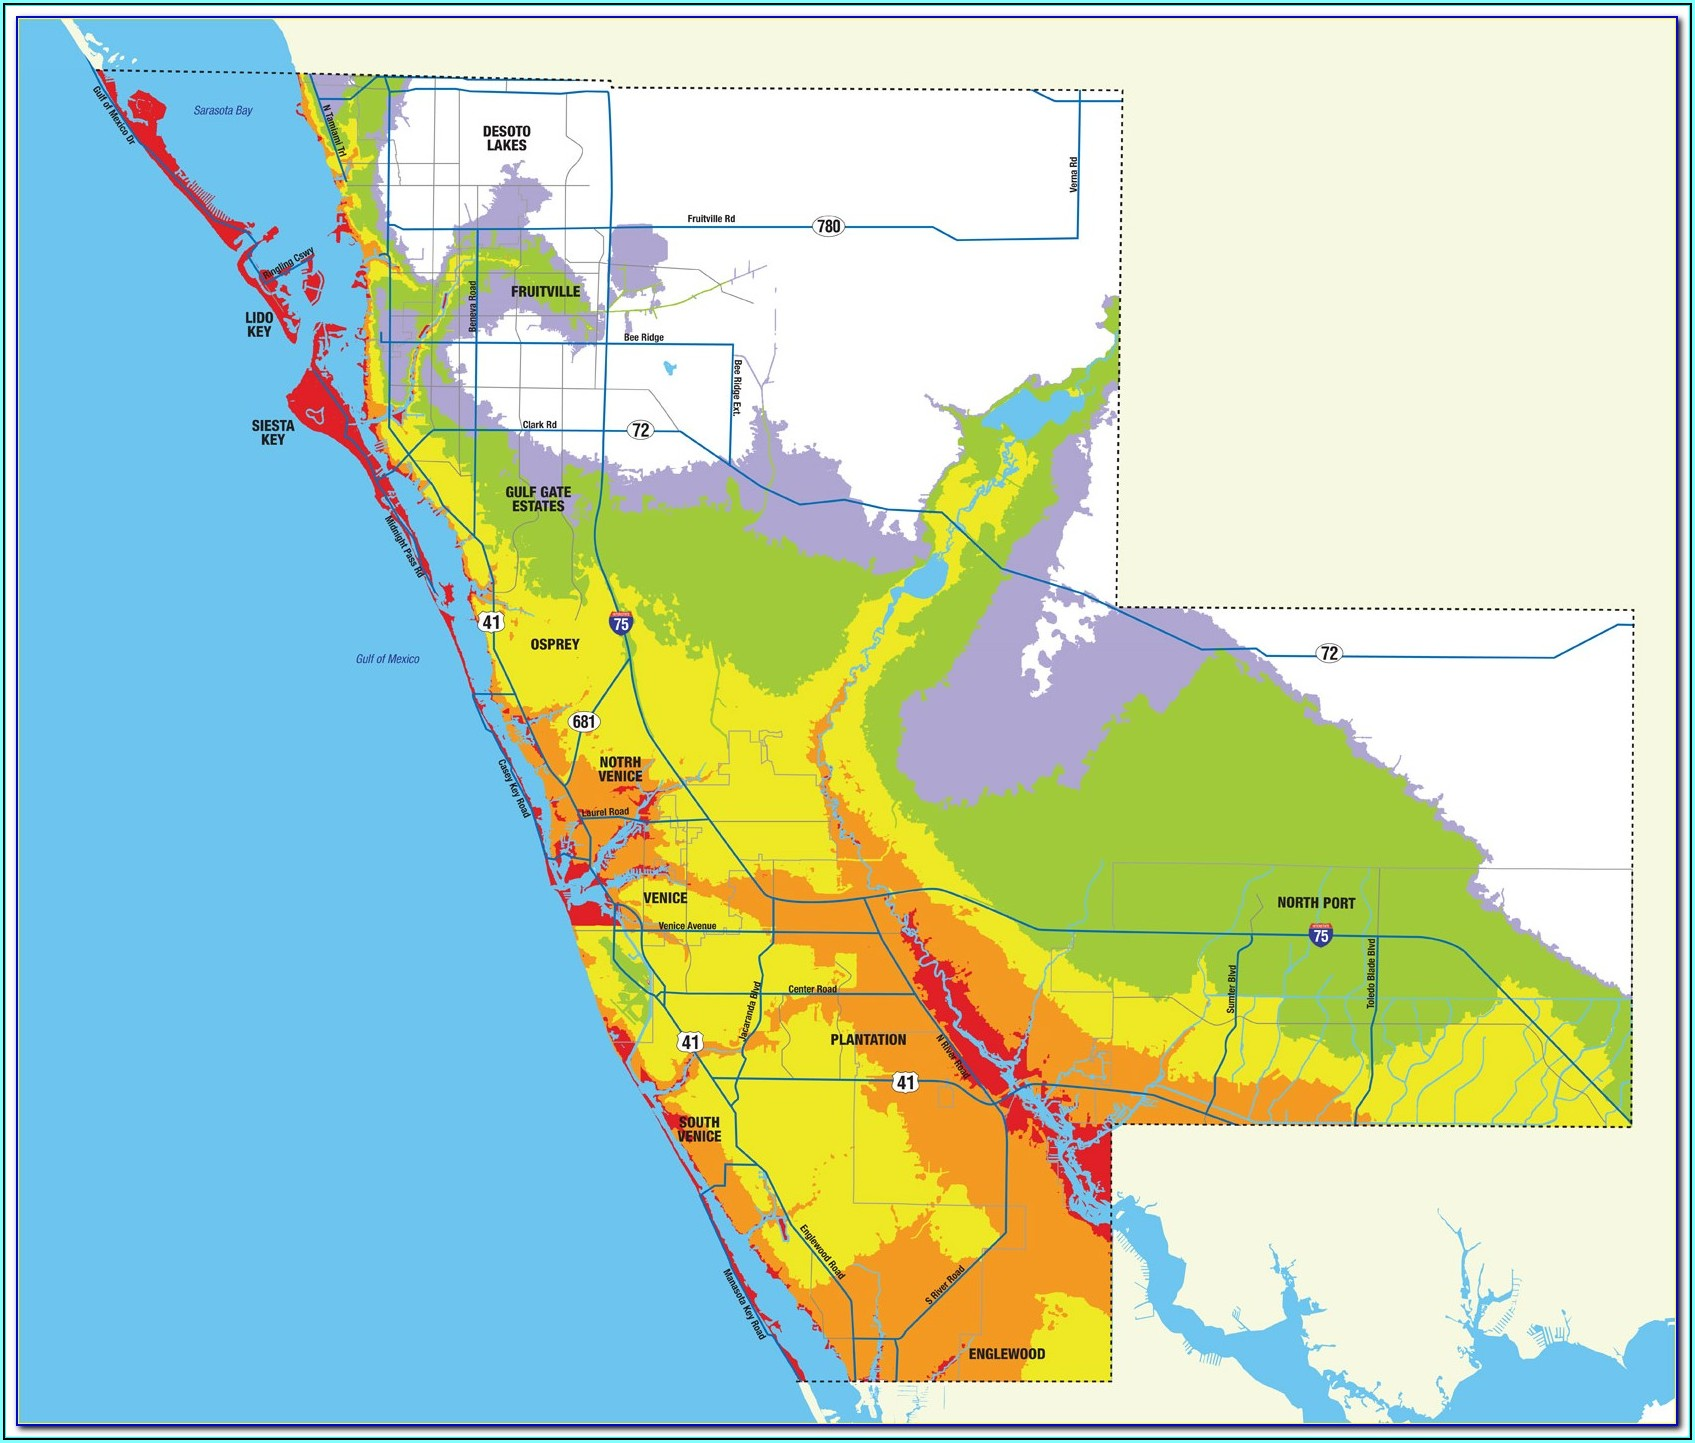 Flood Zone Maps Florida